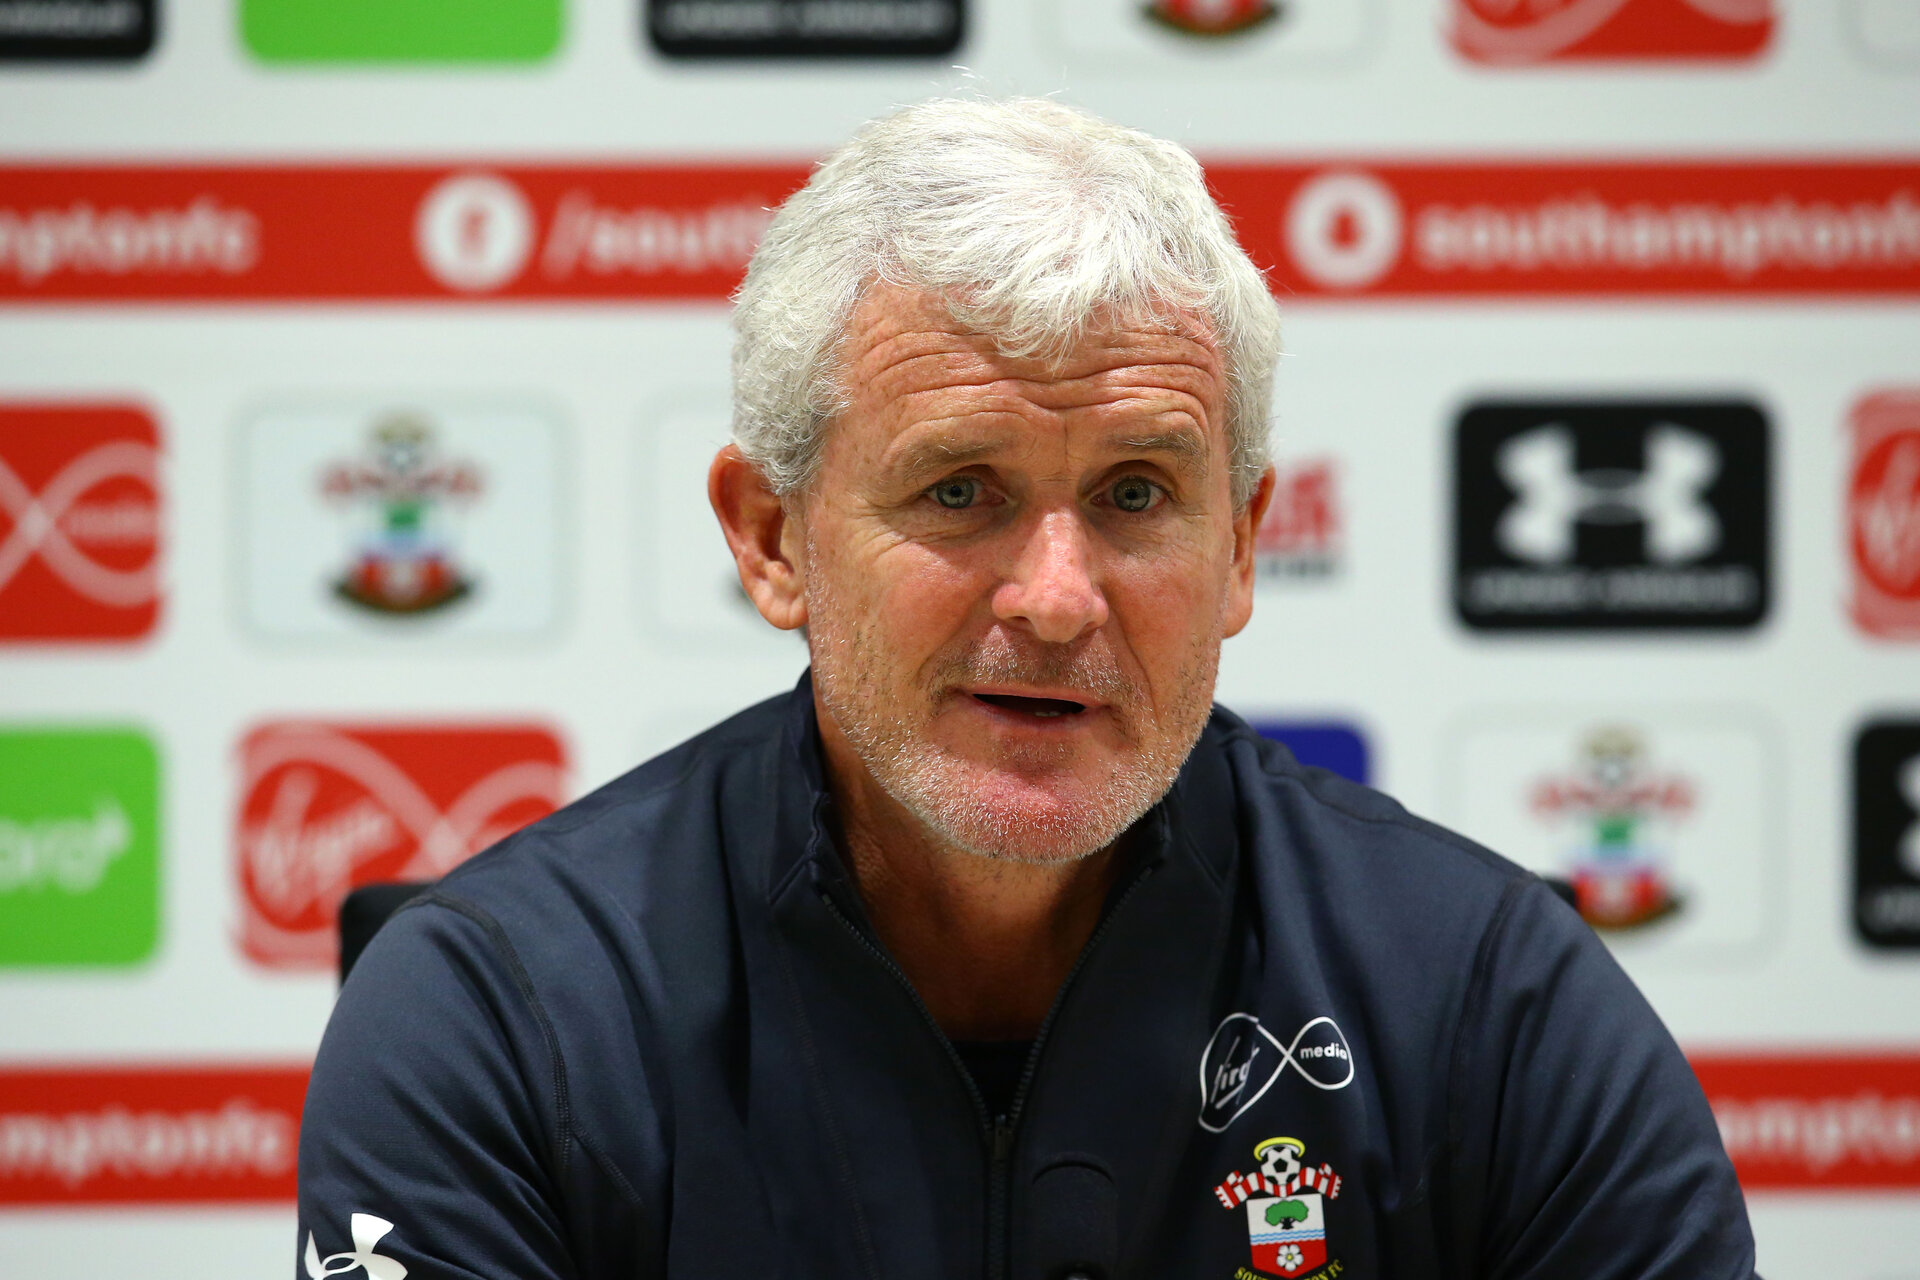 SOUTHAMPTON, ENGLAND - AUGUST 23: Mark Hughes during a Southampton FC Press conference at Staplewood Complex on August 23, 2018 in Southampton, England. (Photo by James Bridle - Southampton FC/Southampton FC via Getty Images)